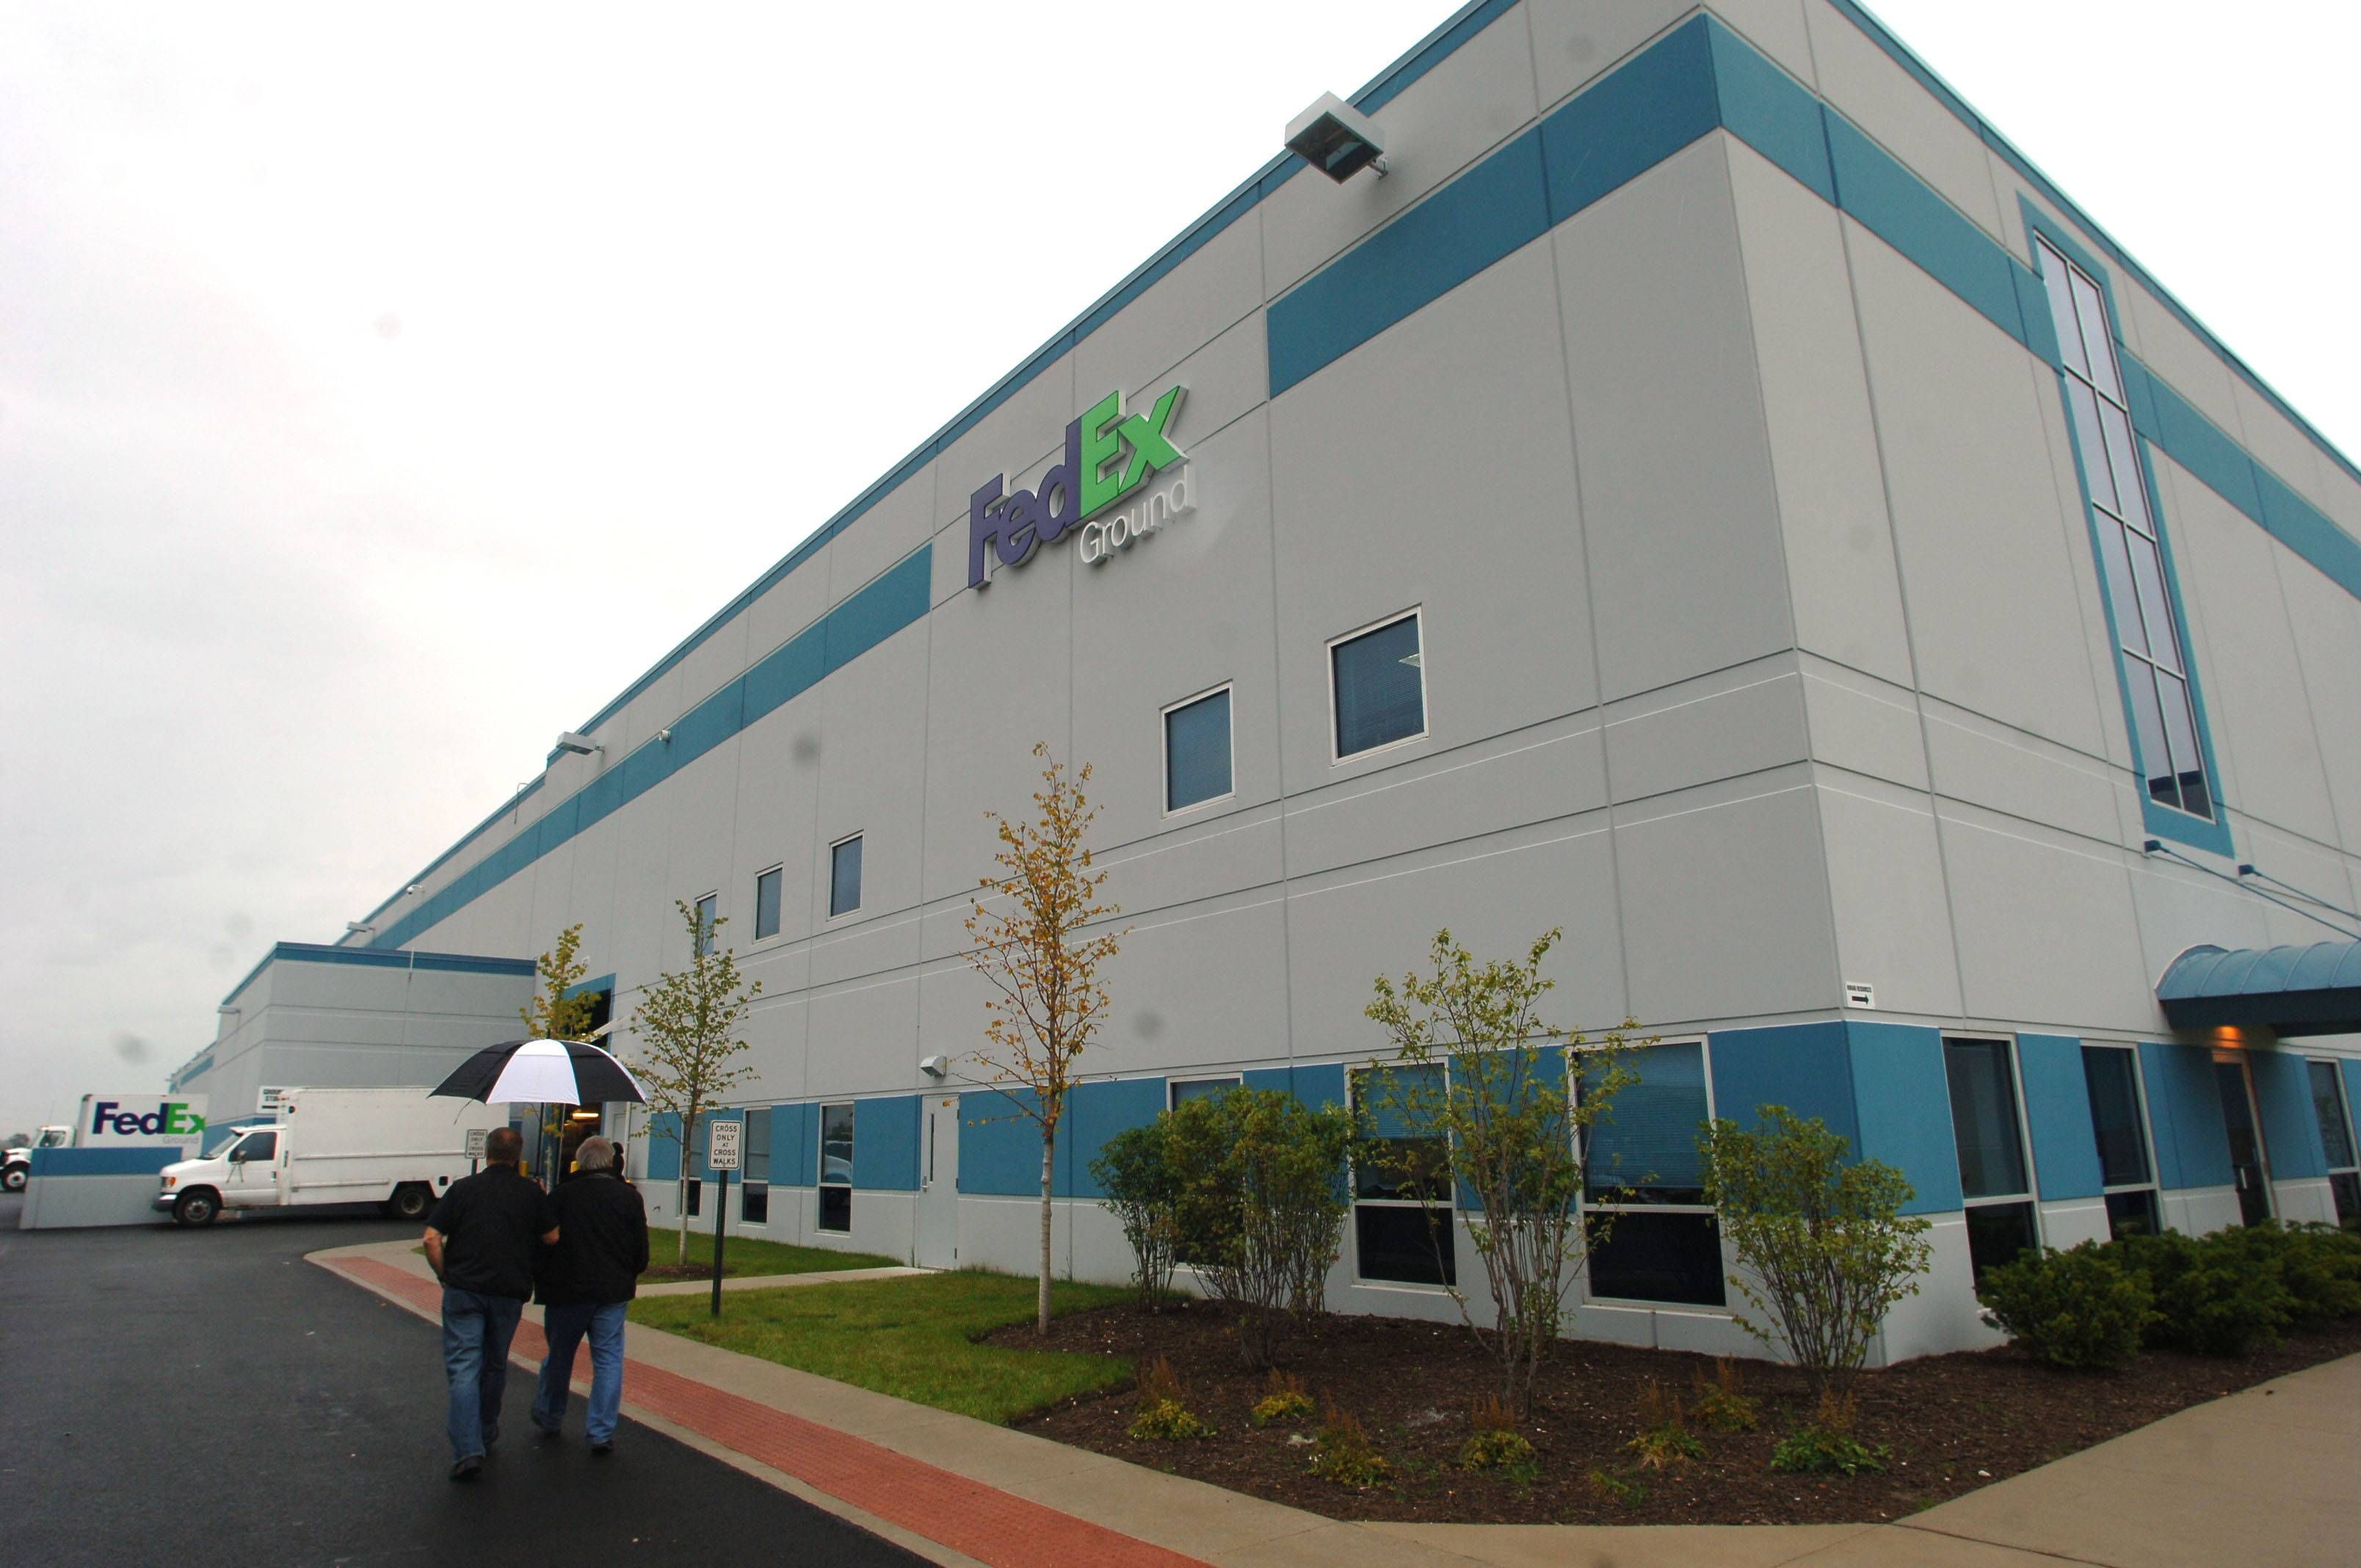 Lake County contributed to an incentive package to bring a FedEx Ground facility to Grayslake, which opened in 2011.